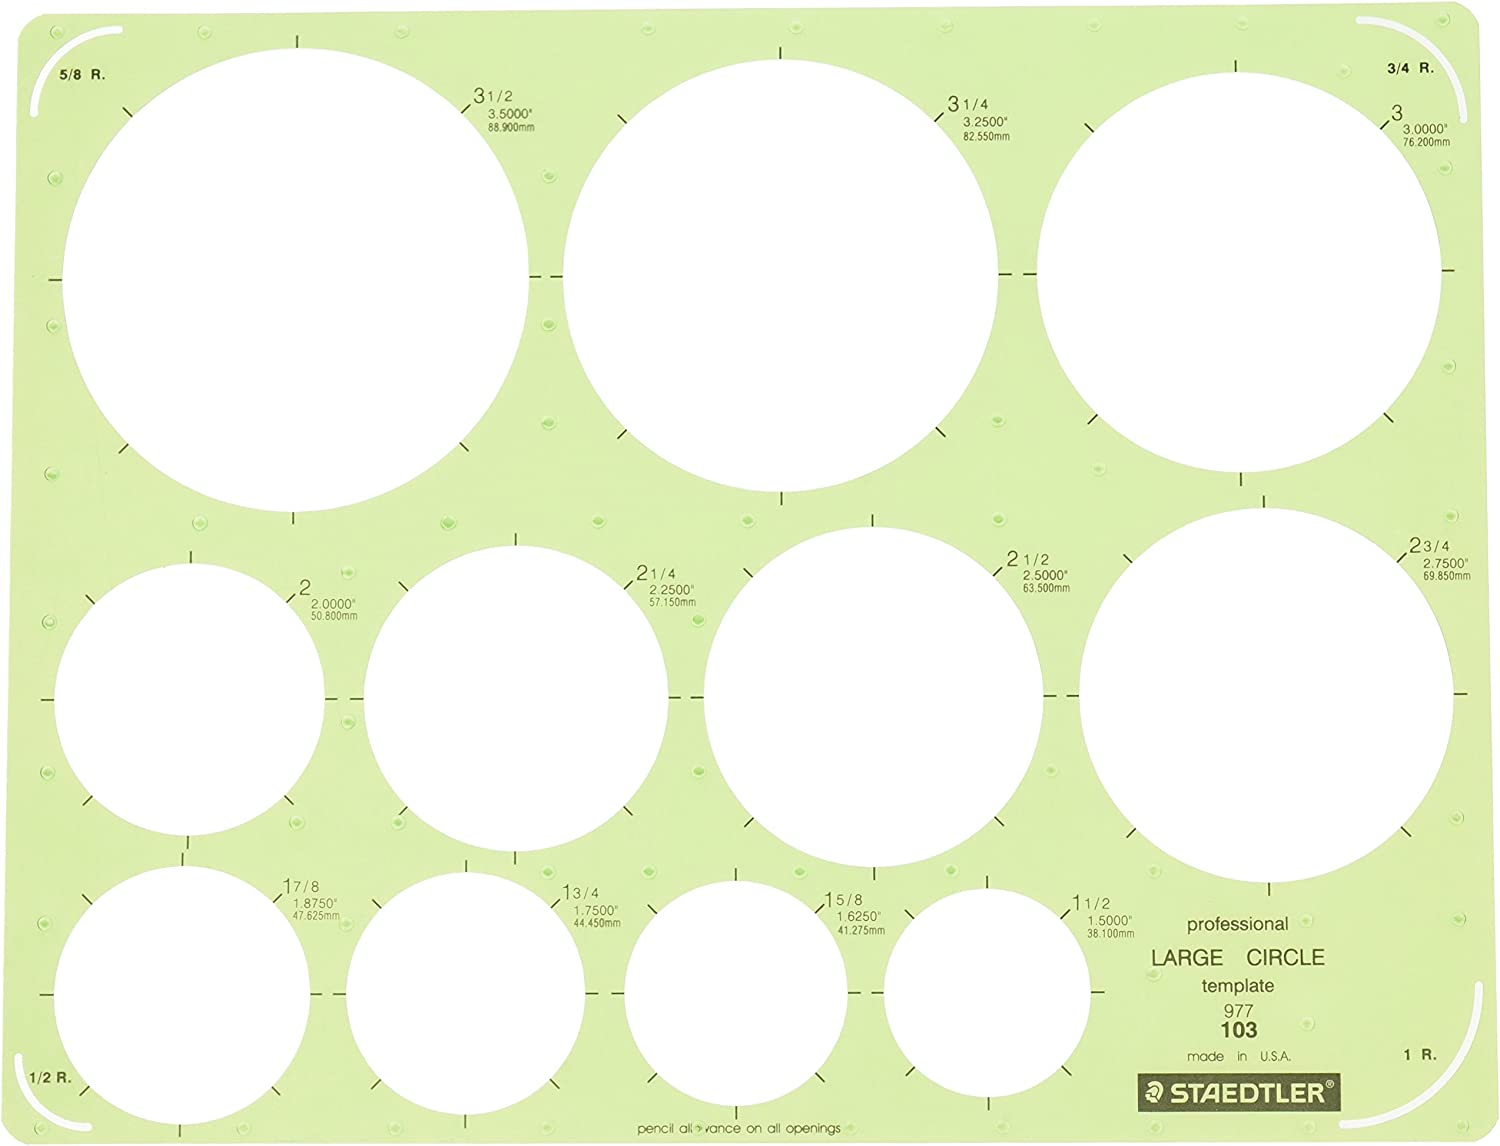 Staedtler Technical Drawing Template (977 103 NA) : Technical Drawing Templates : Office Products